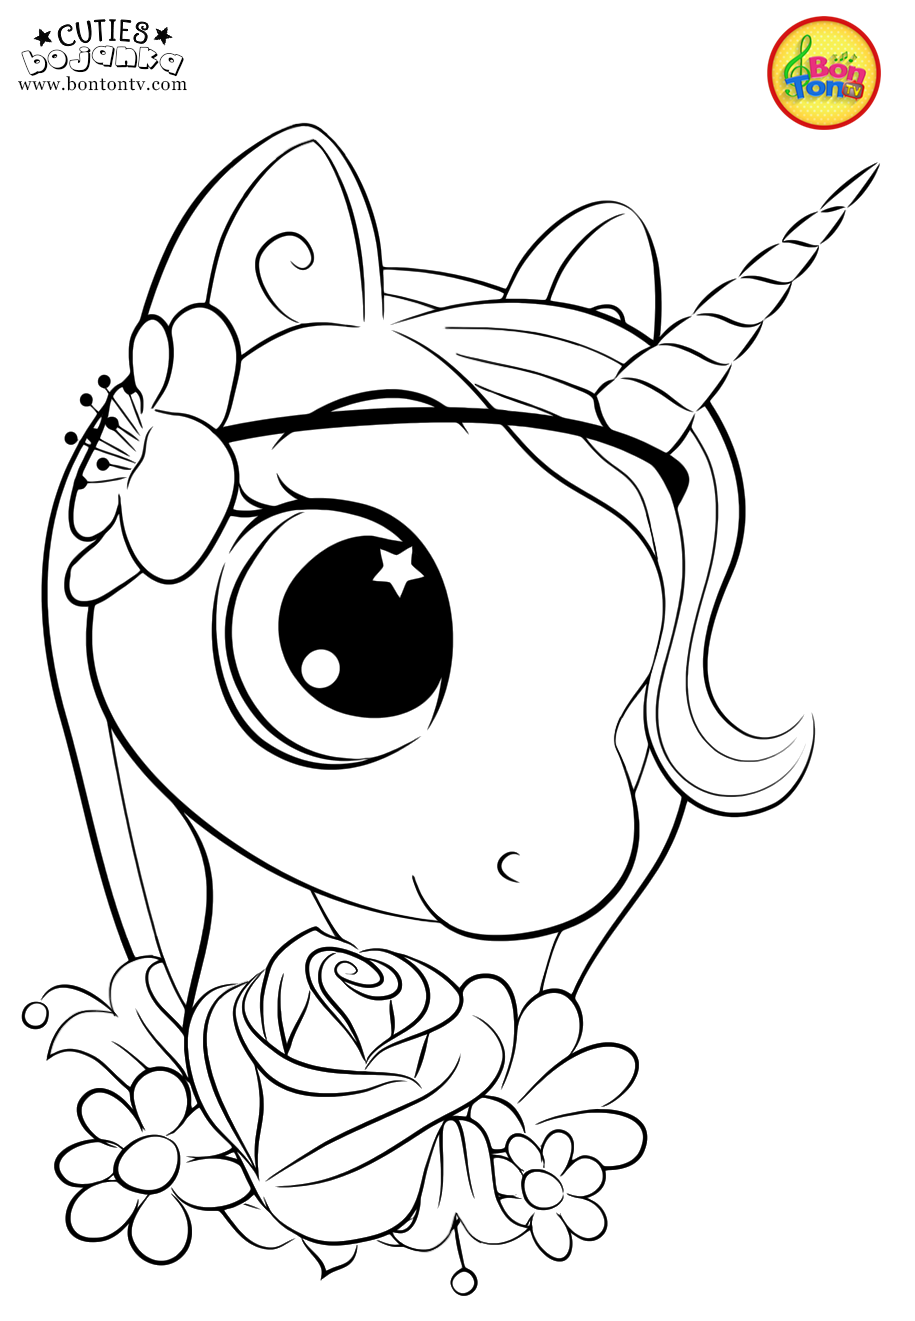 Cuties Coloring Pages For Kids Free Preschool Printables Slatkice Bojanke Cute Animal Colorin Unicorn Coloring Pages Animal Coloring Pages Coloring Books